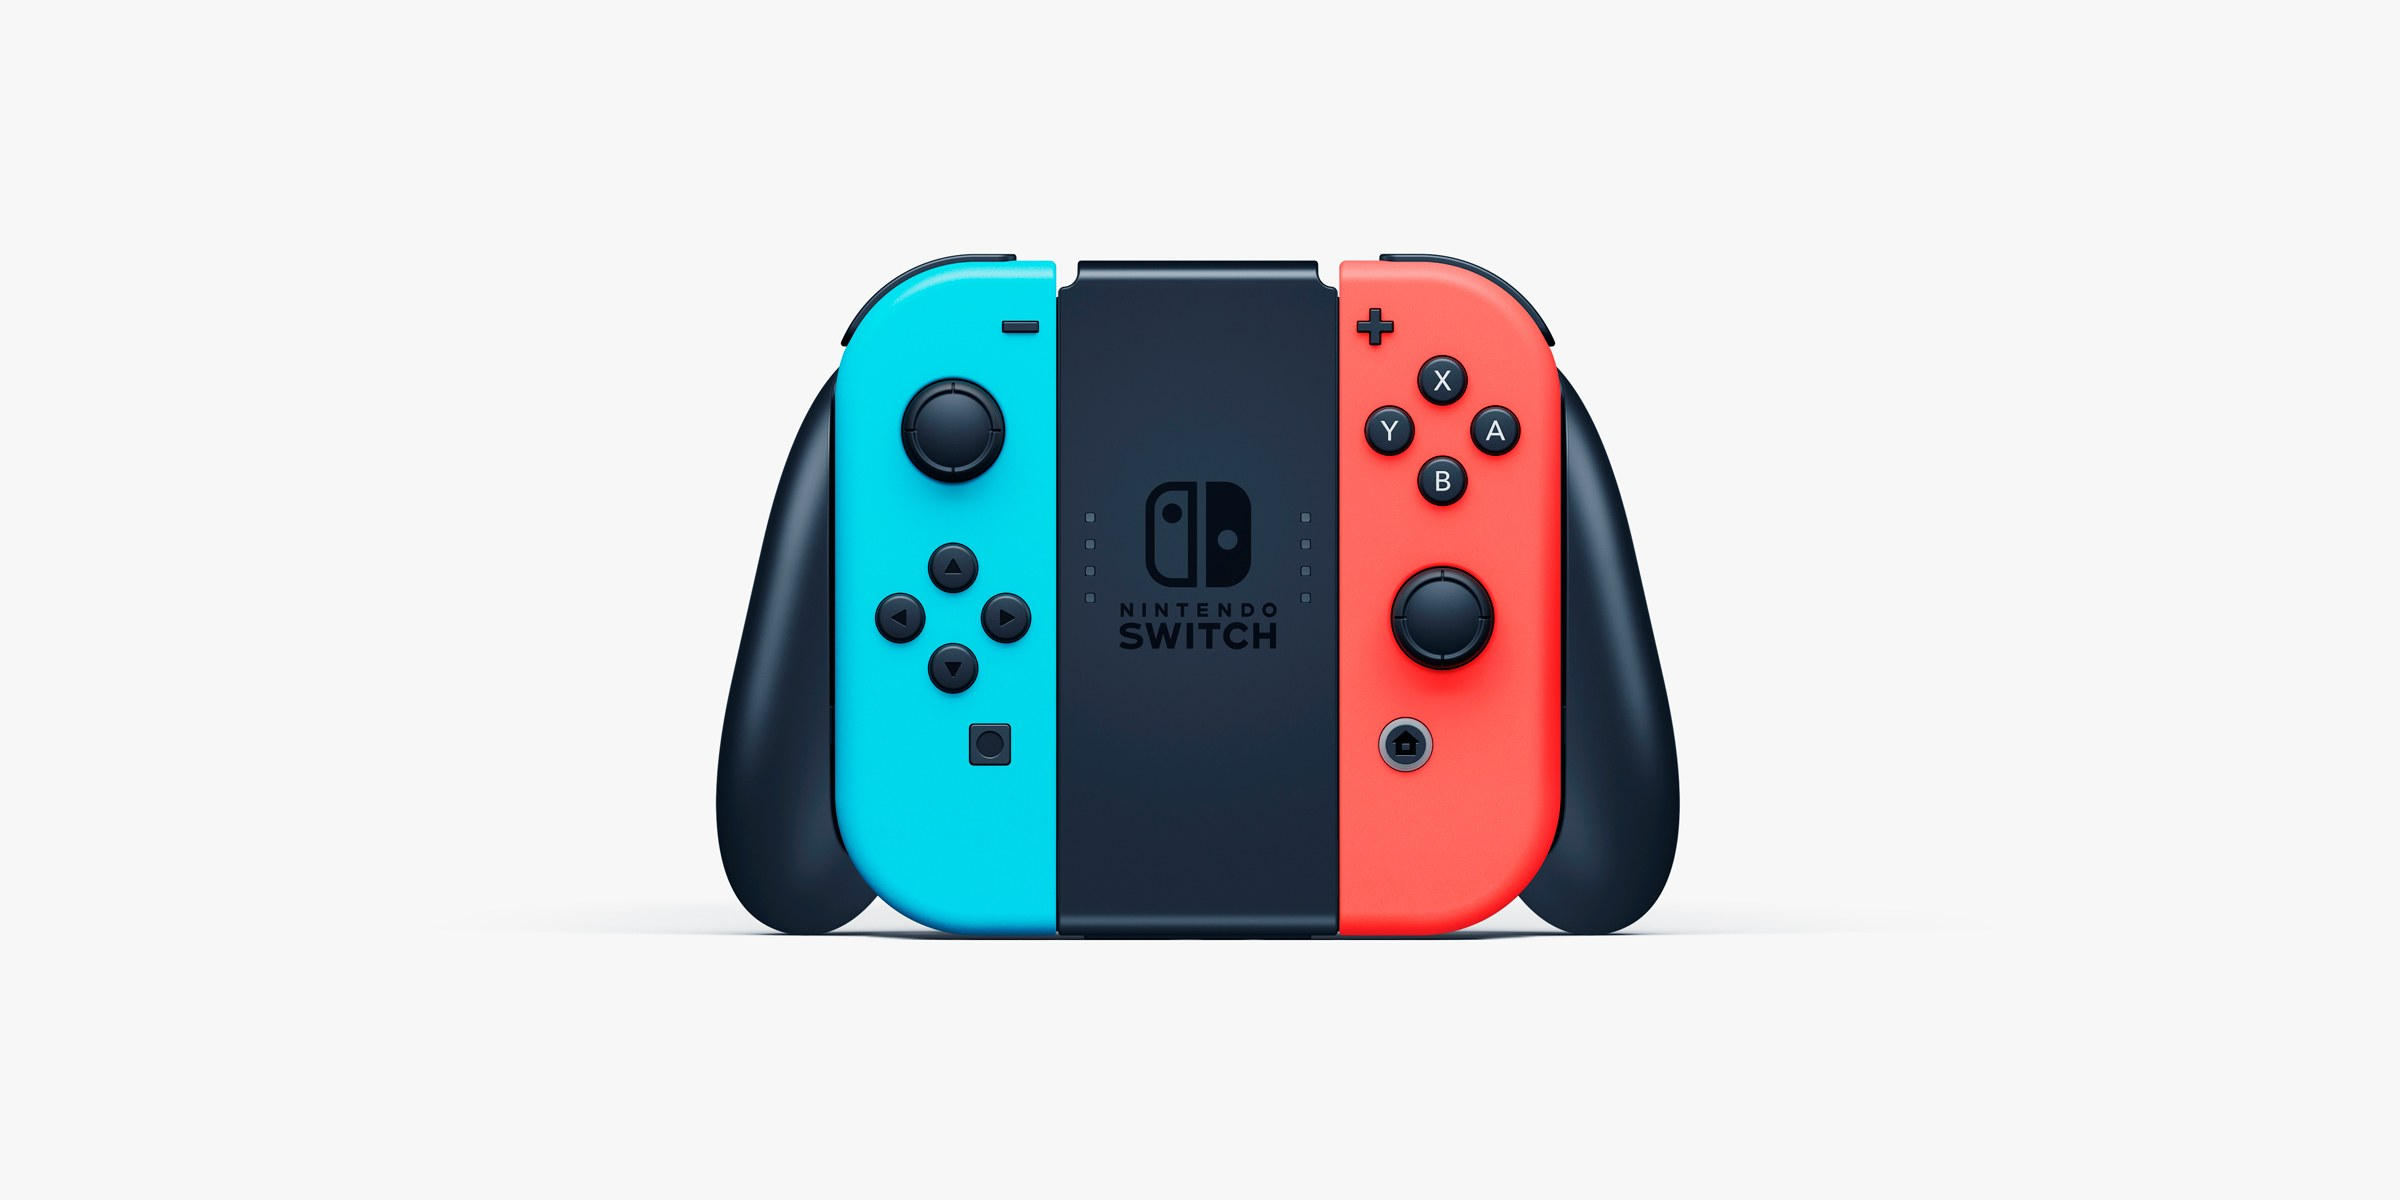 Nintendo moves some Switch production to Vietnam